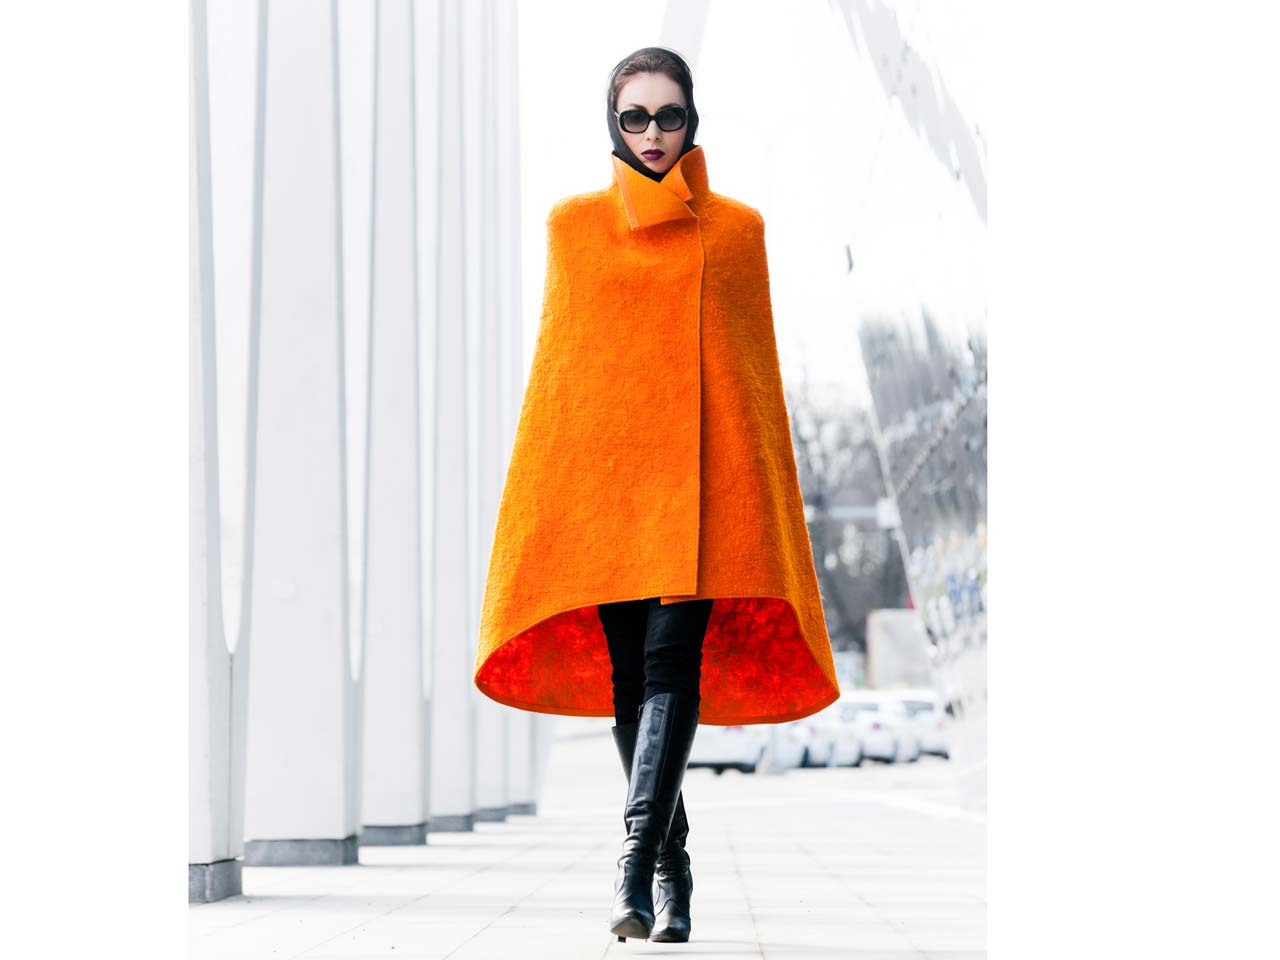 Stylish woman wearing an orange winter coat and black boots